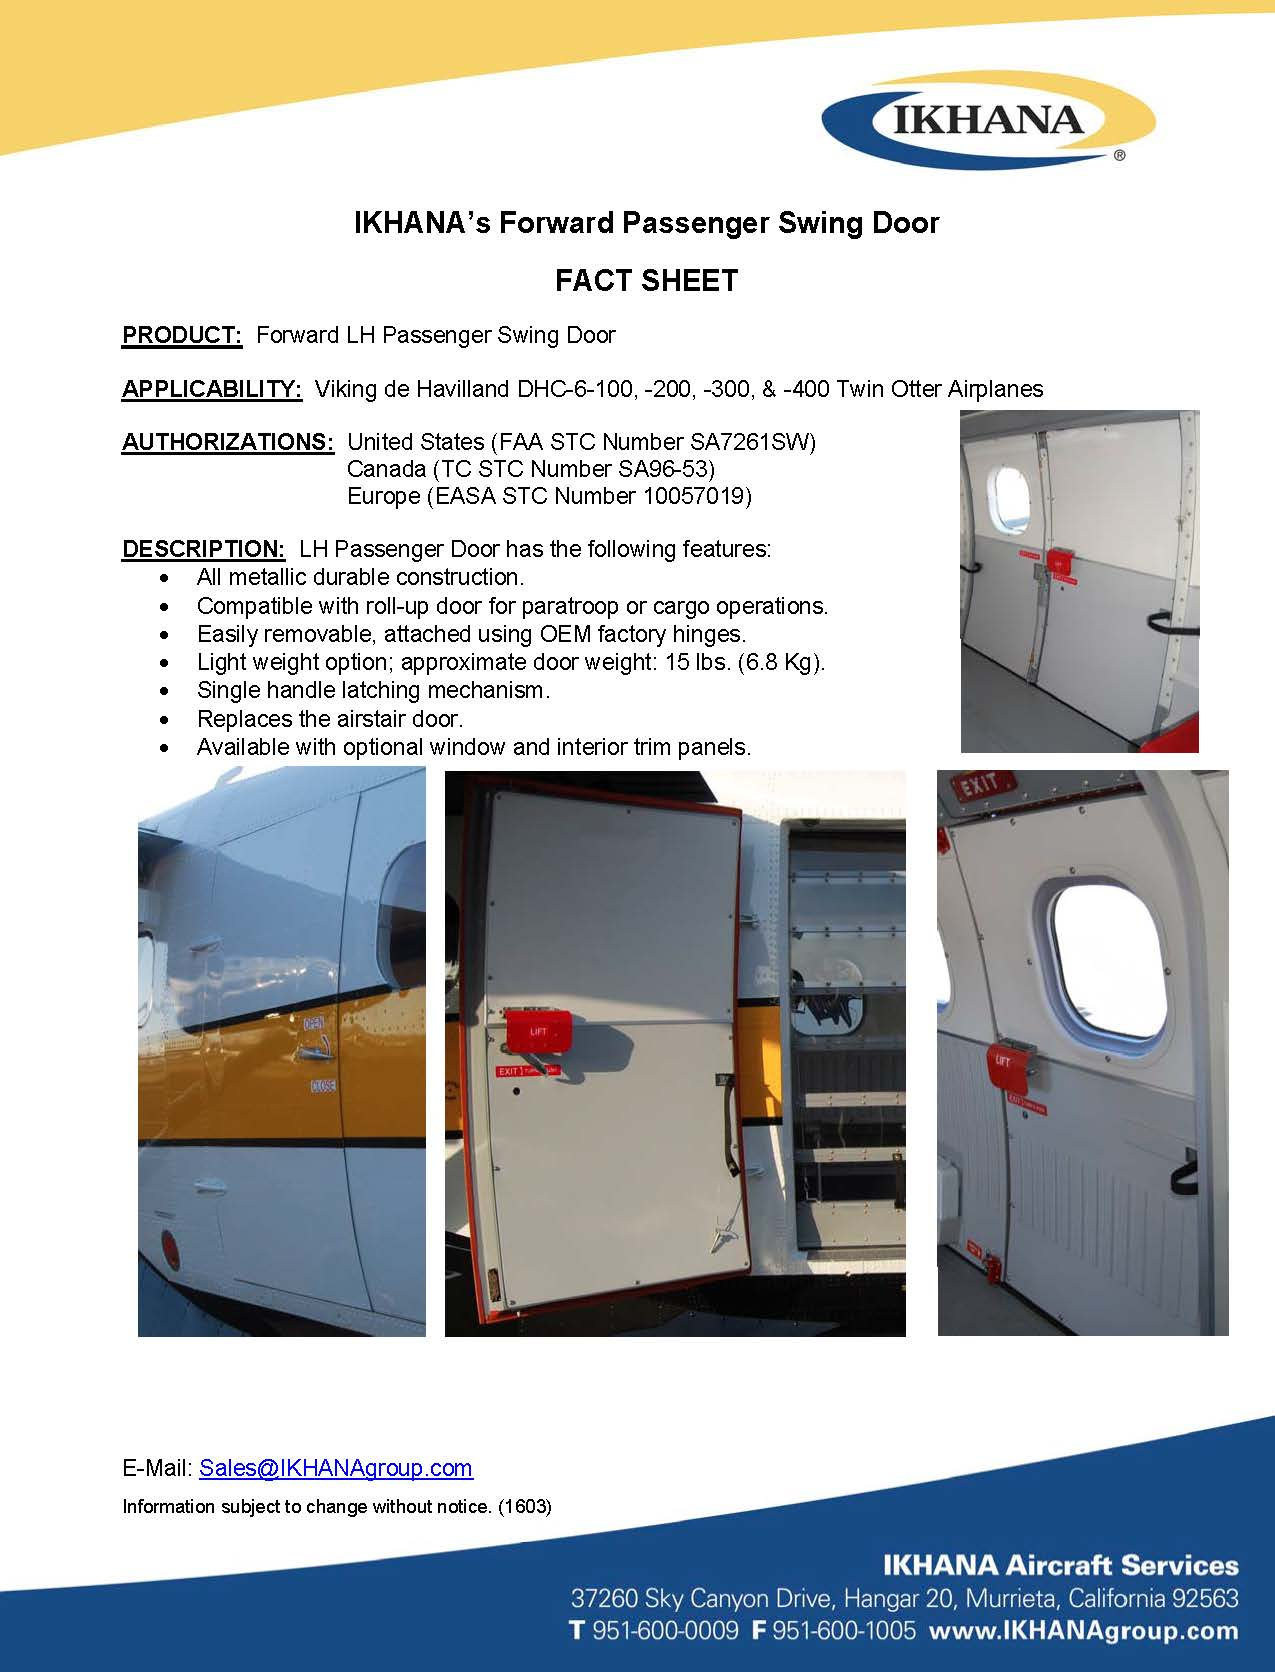 IKHANA's Forward Passenger Swing Door